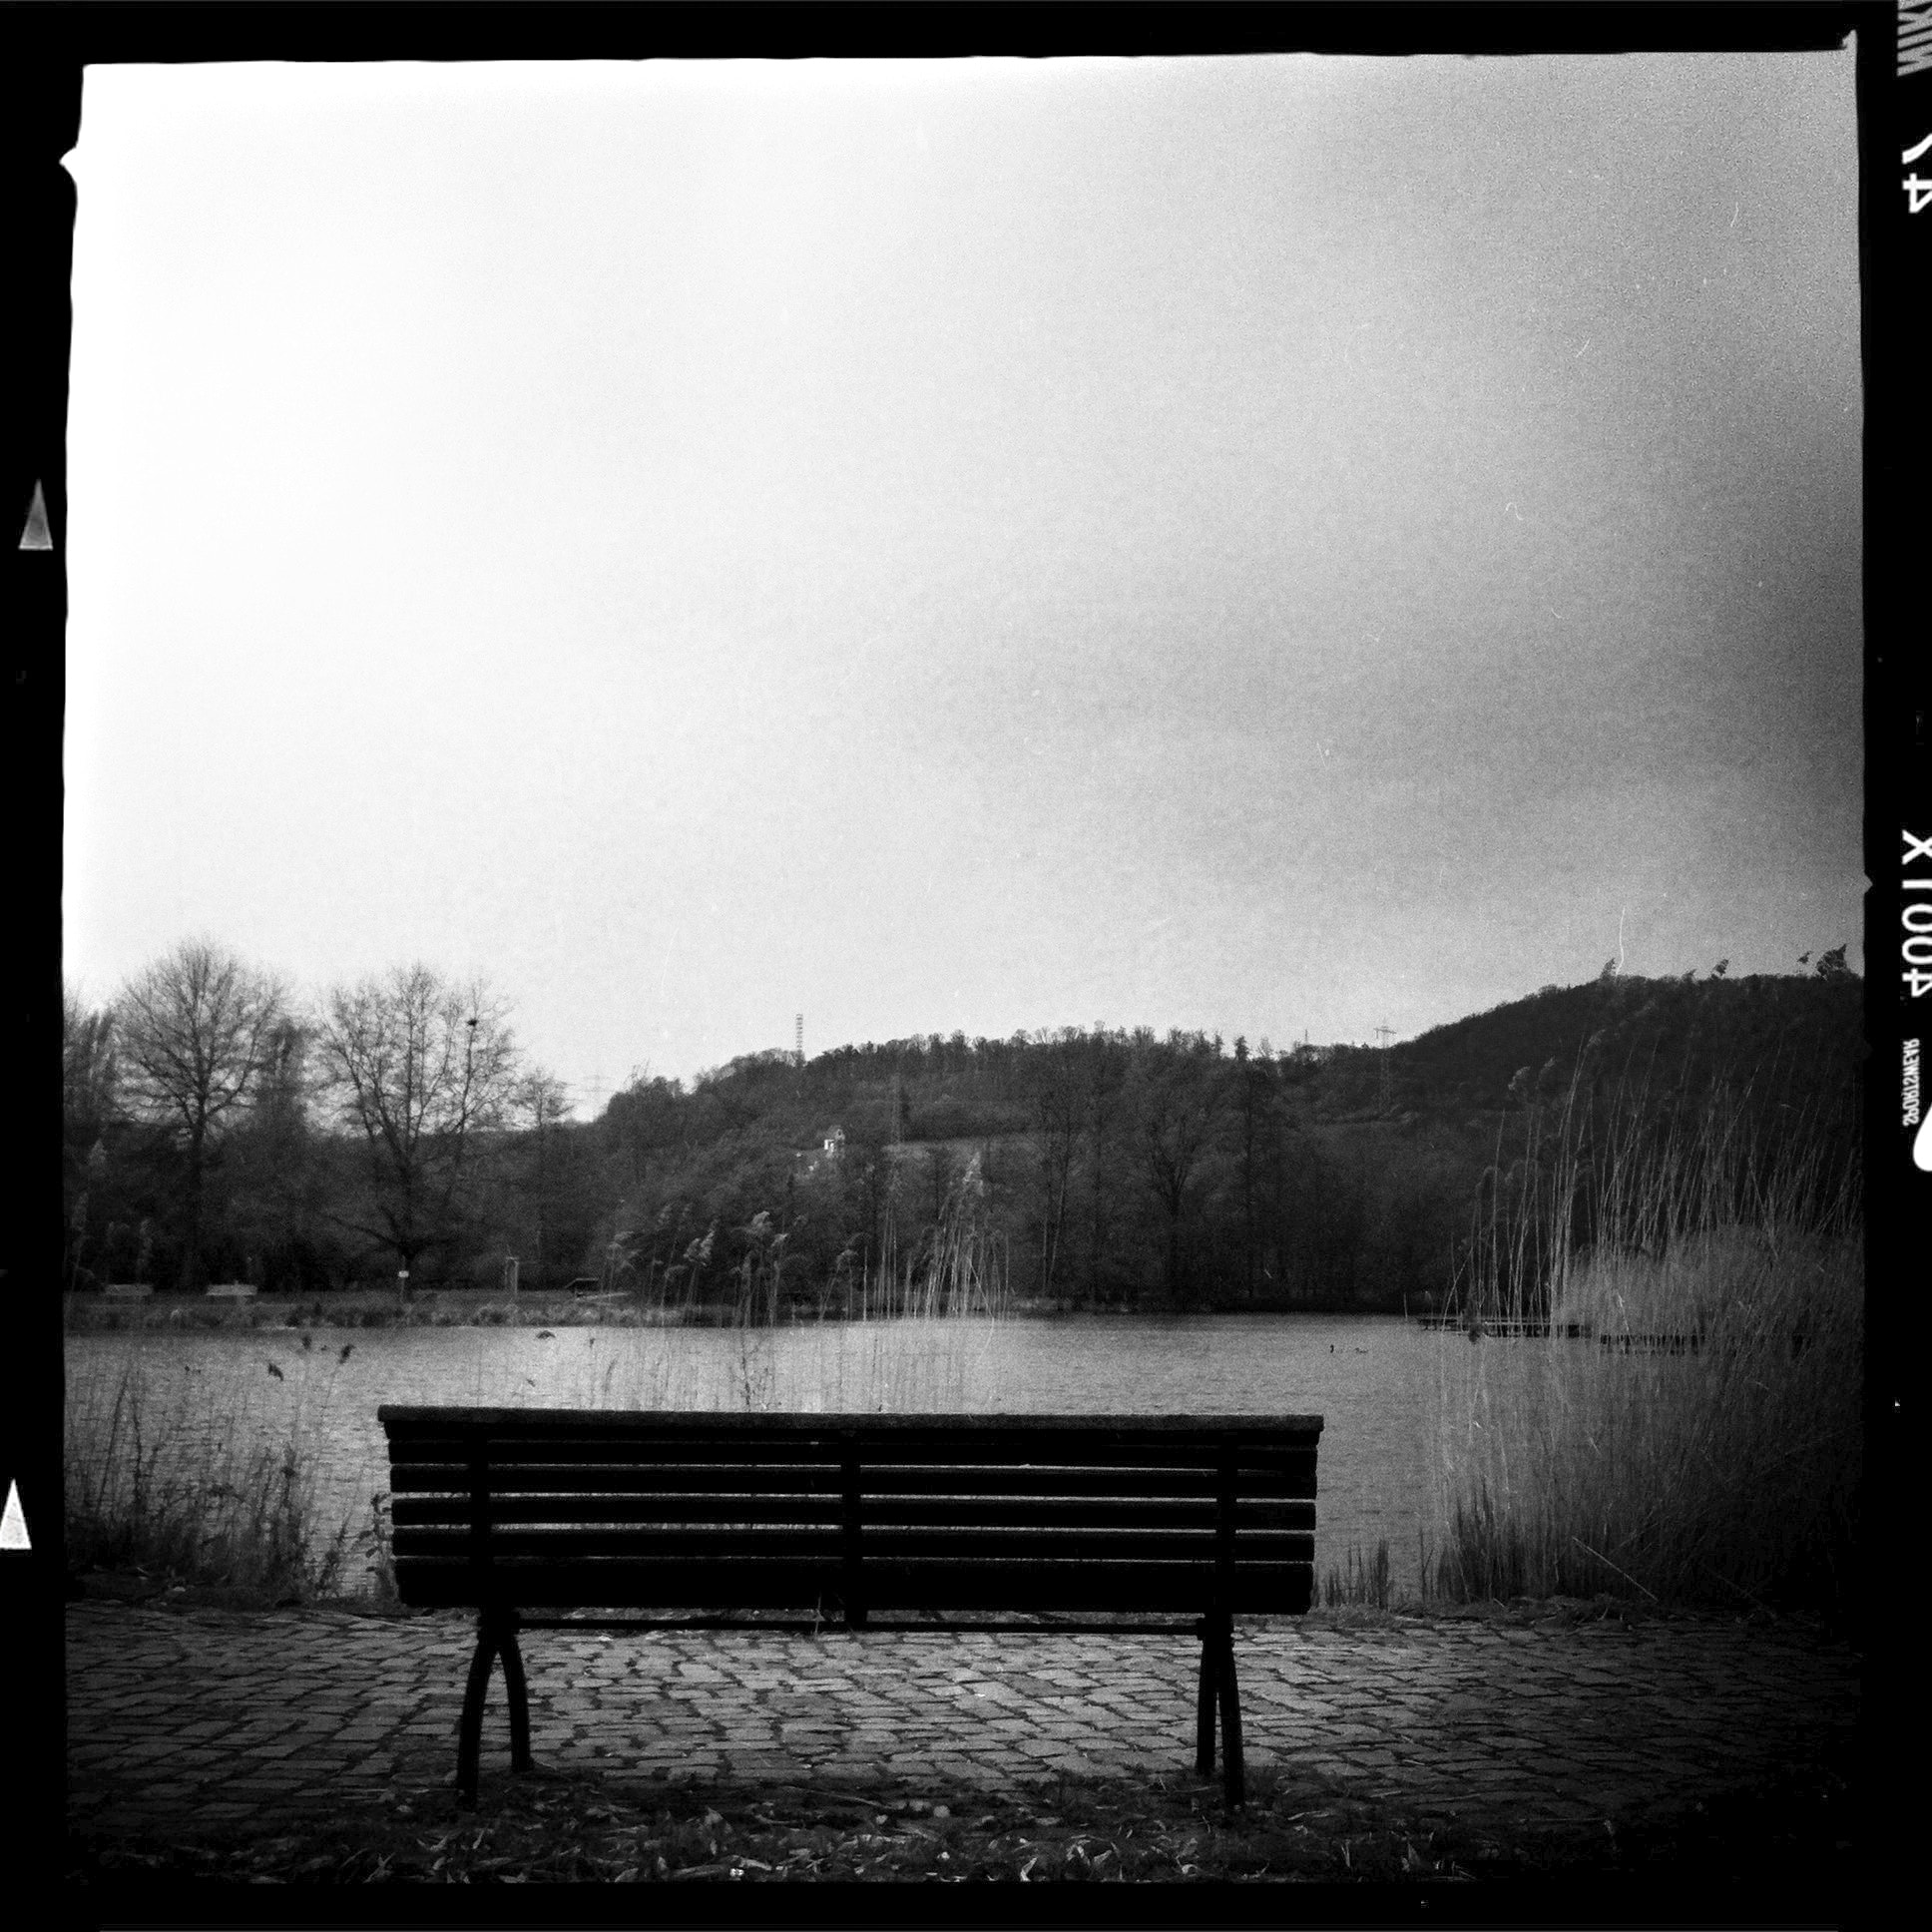 Photograph Bench at the pond by Tilman Haerdle on 500px